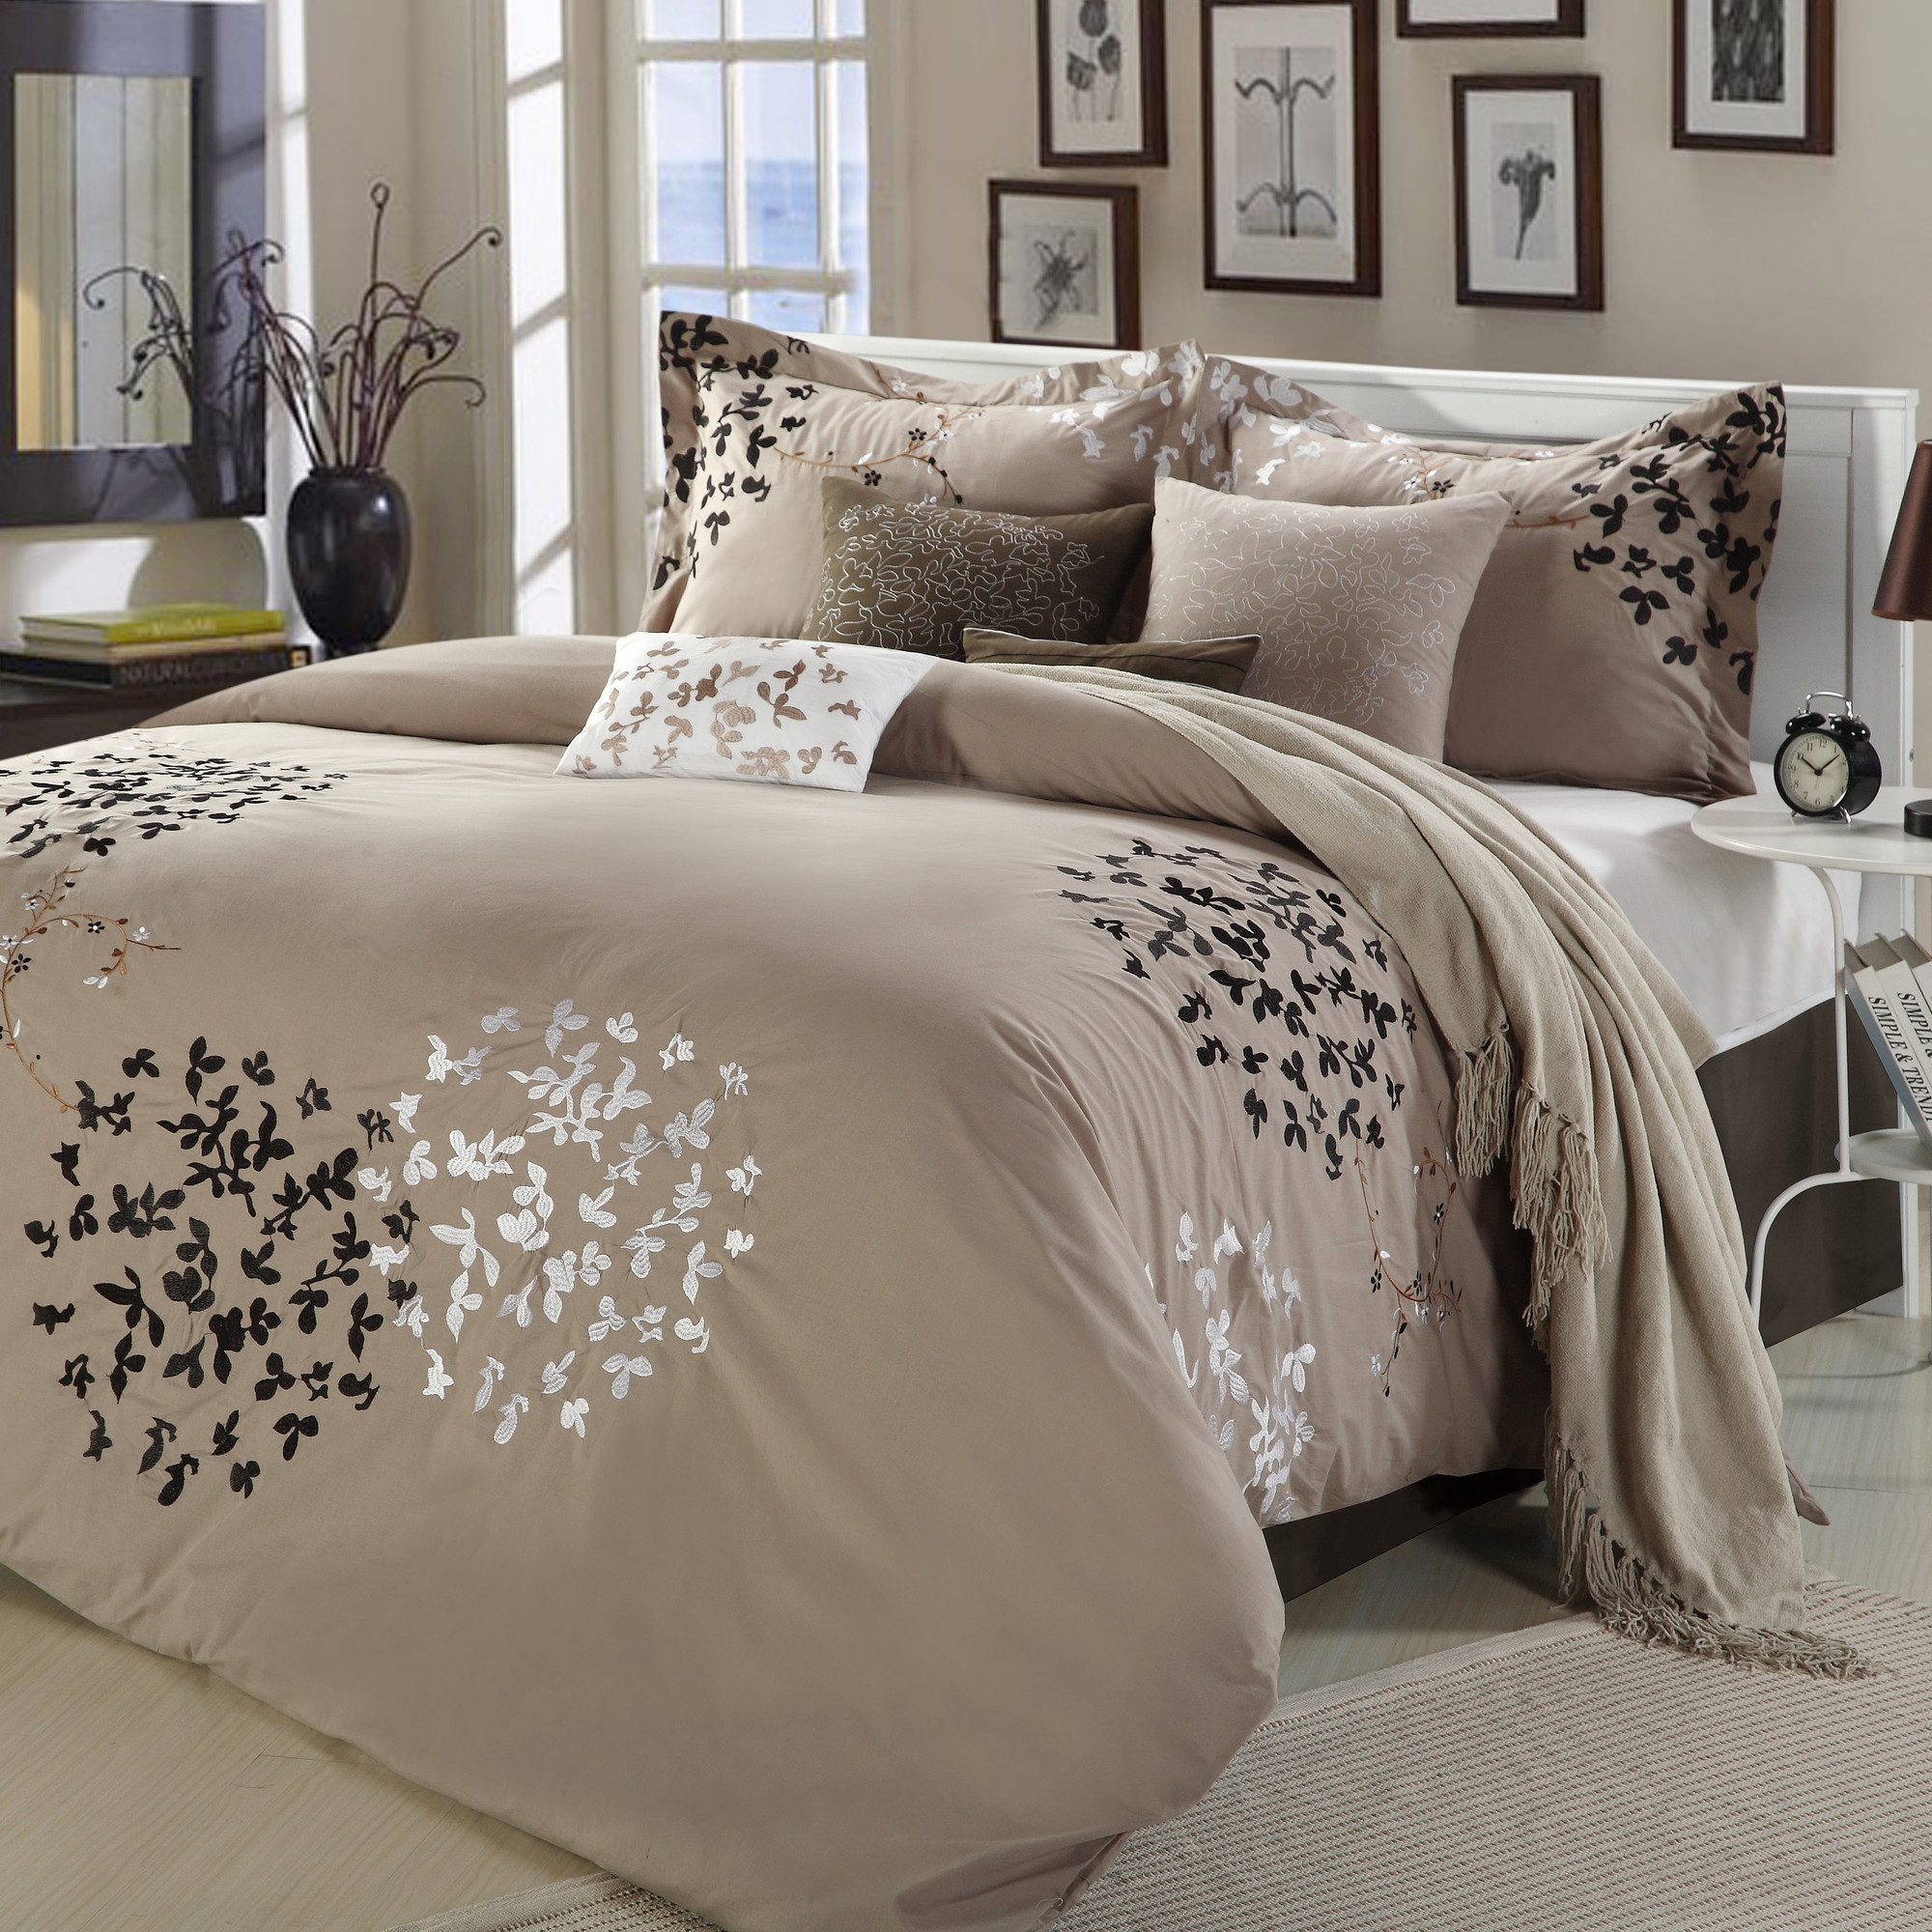 Complete Bed Sets Queen | Bed In A Bag Queen Comforter Sets | Queen Bedding Sets